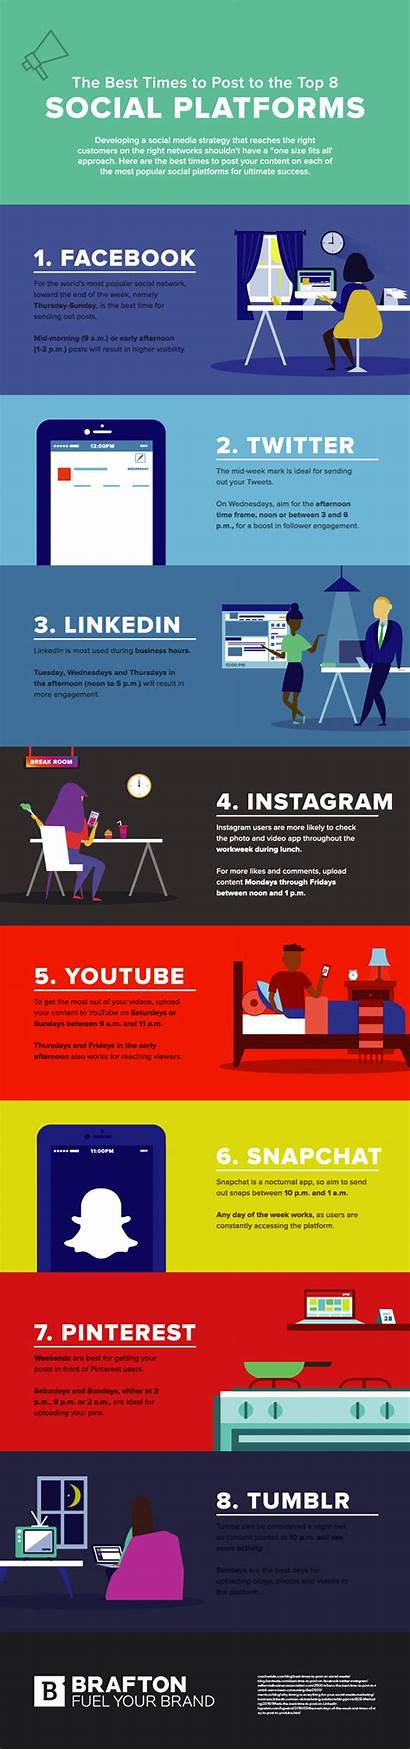 Social Times Infographic Platforms Gifographic Science Networks